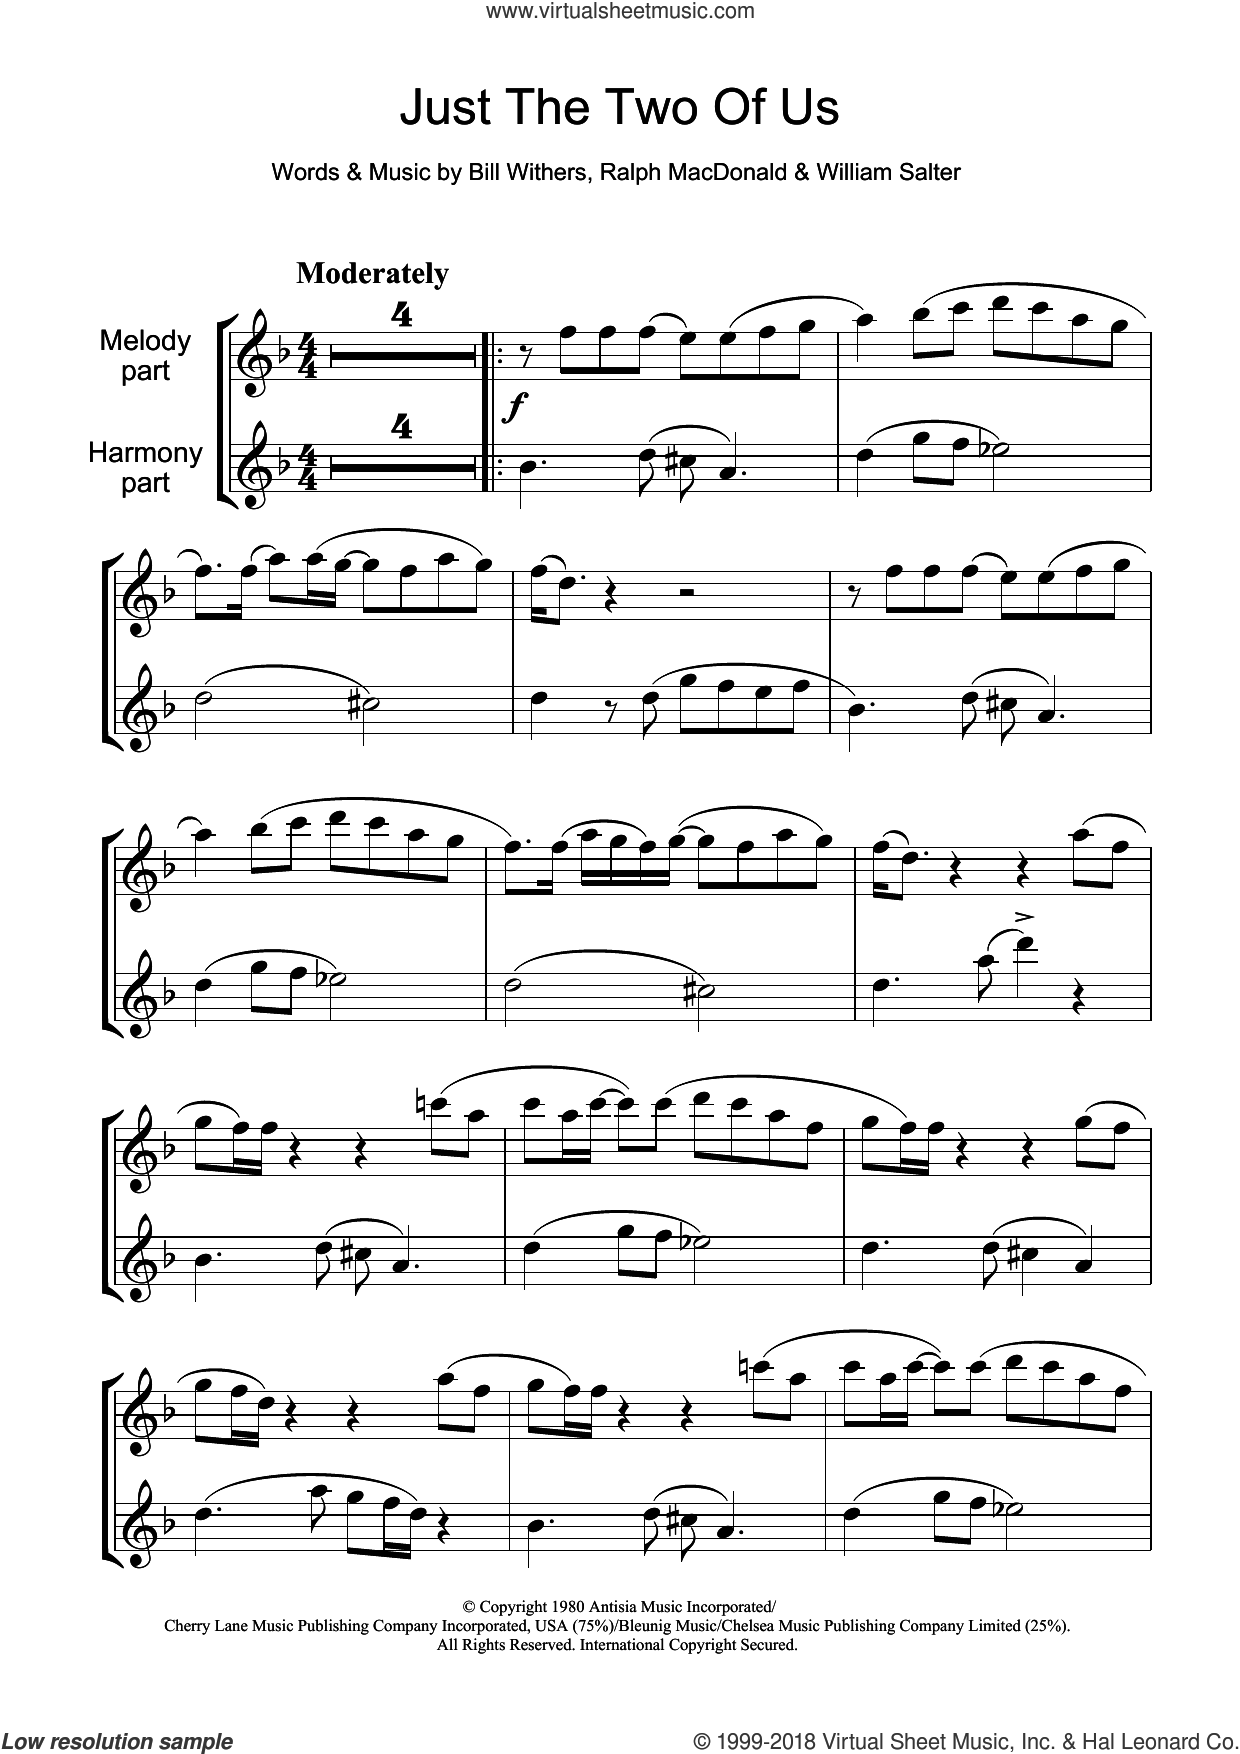 Just The Two Of Us sheet music for flute solo by Bill Withers, Ralph MacDonald and William Salter, intermediate skill level